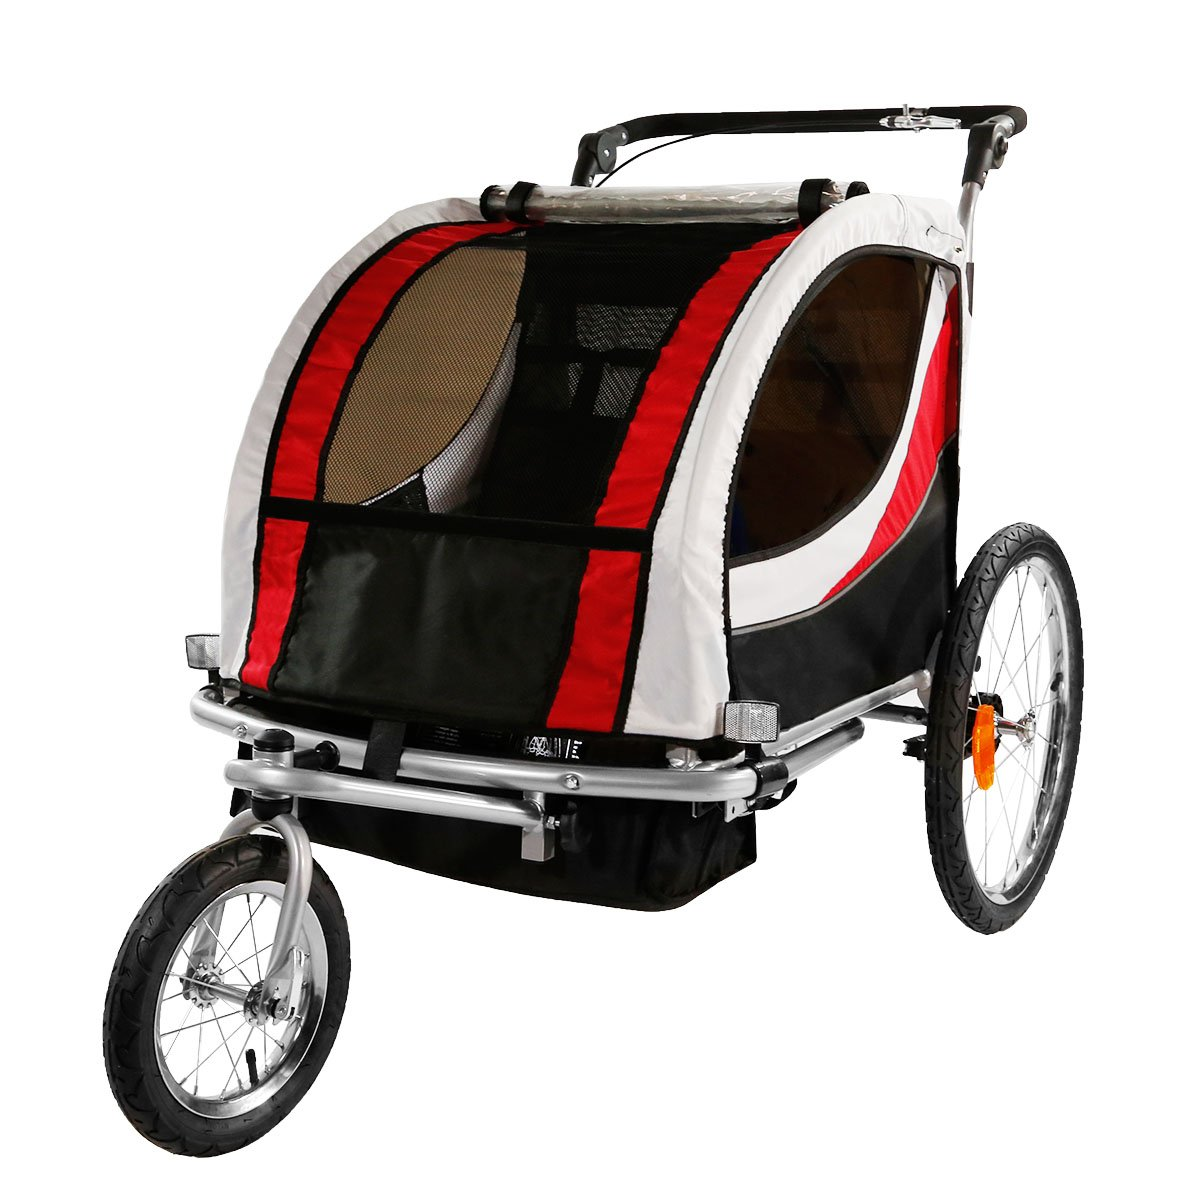 Best Bike Trailer Clevr 3-in-1 Collapsible 2 Seat Double Bicycle Trailer Baby Bike Jogger